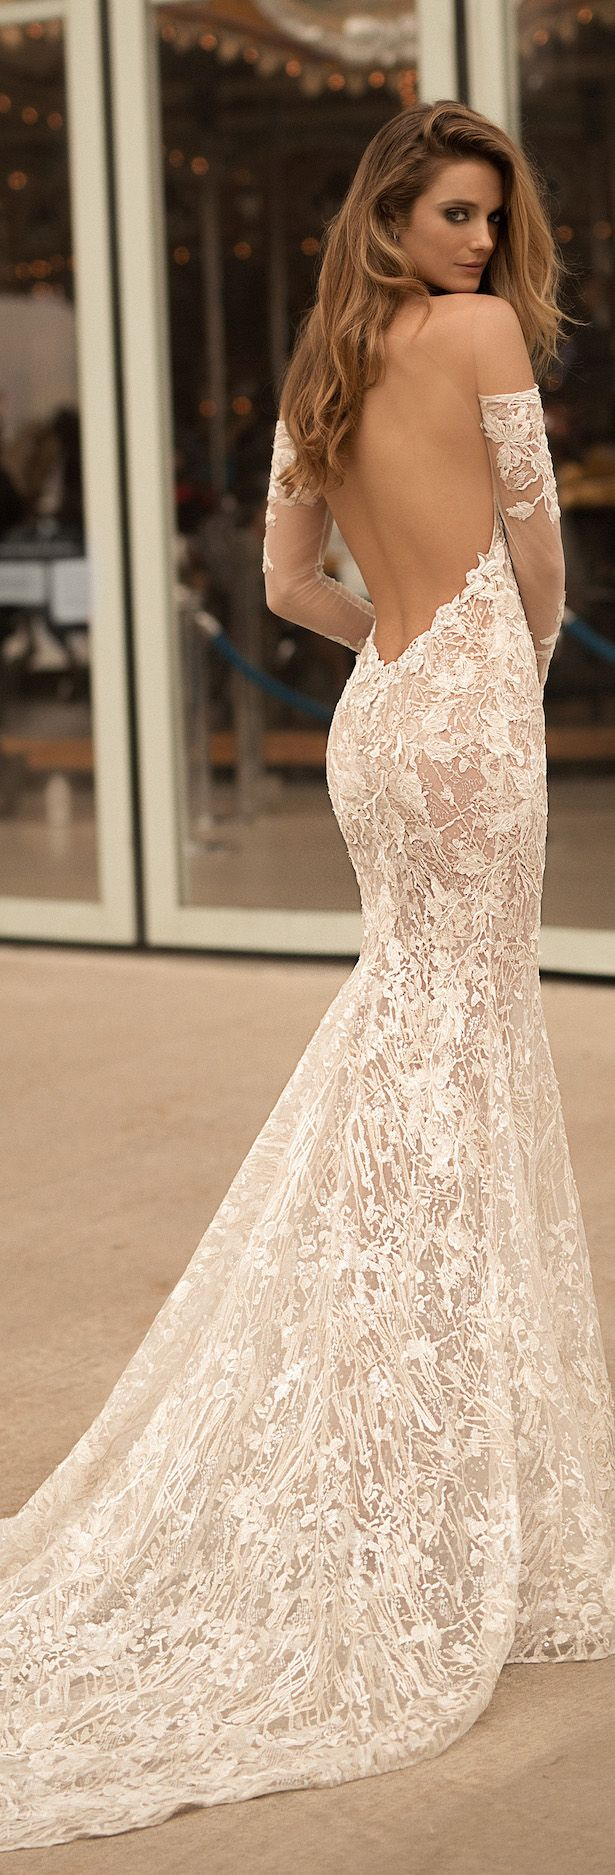 I need a dress for a spring wedding  To be honest looking at this makes me wonder if I really want a